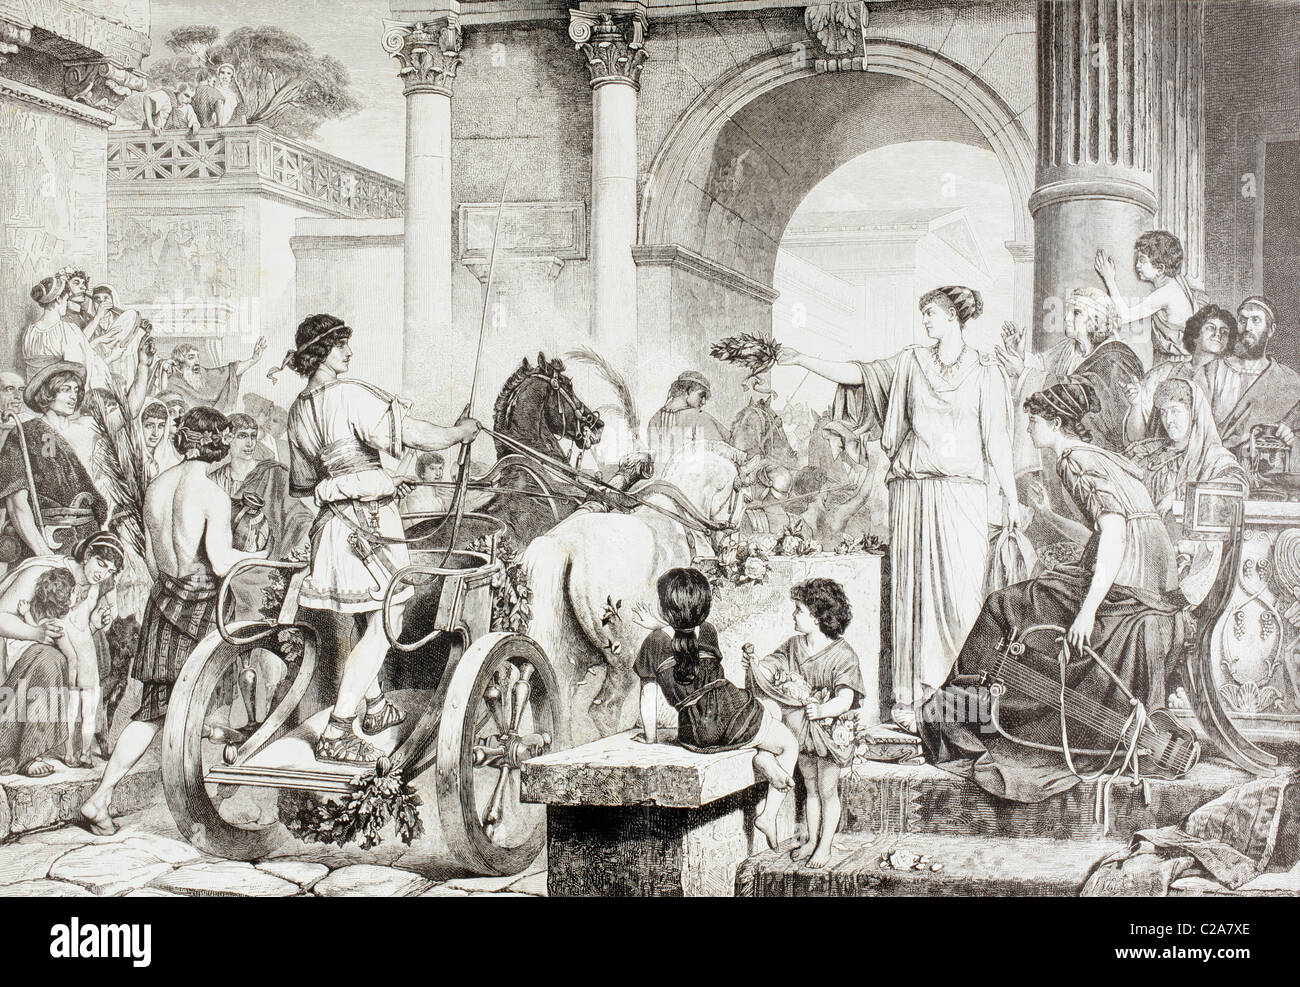 Ancient Greek Olympic Games. The winner of the chariot race is saluted and offered the champion's crown. - Stock Image